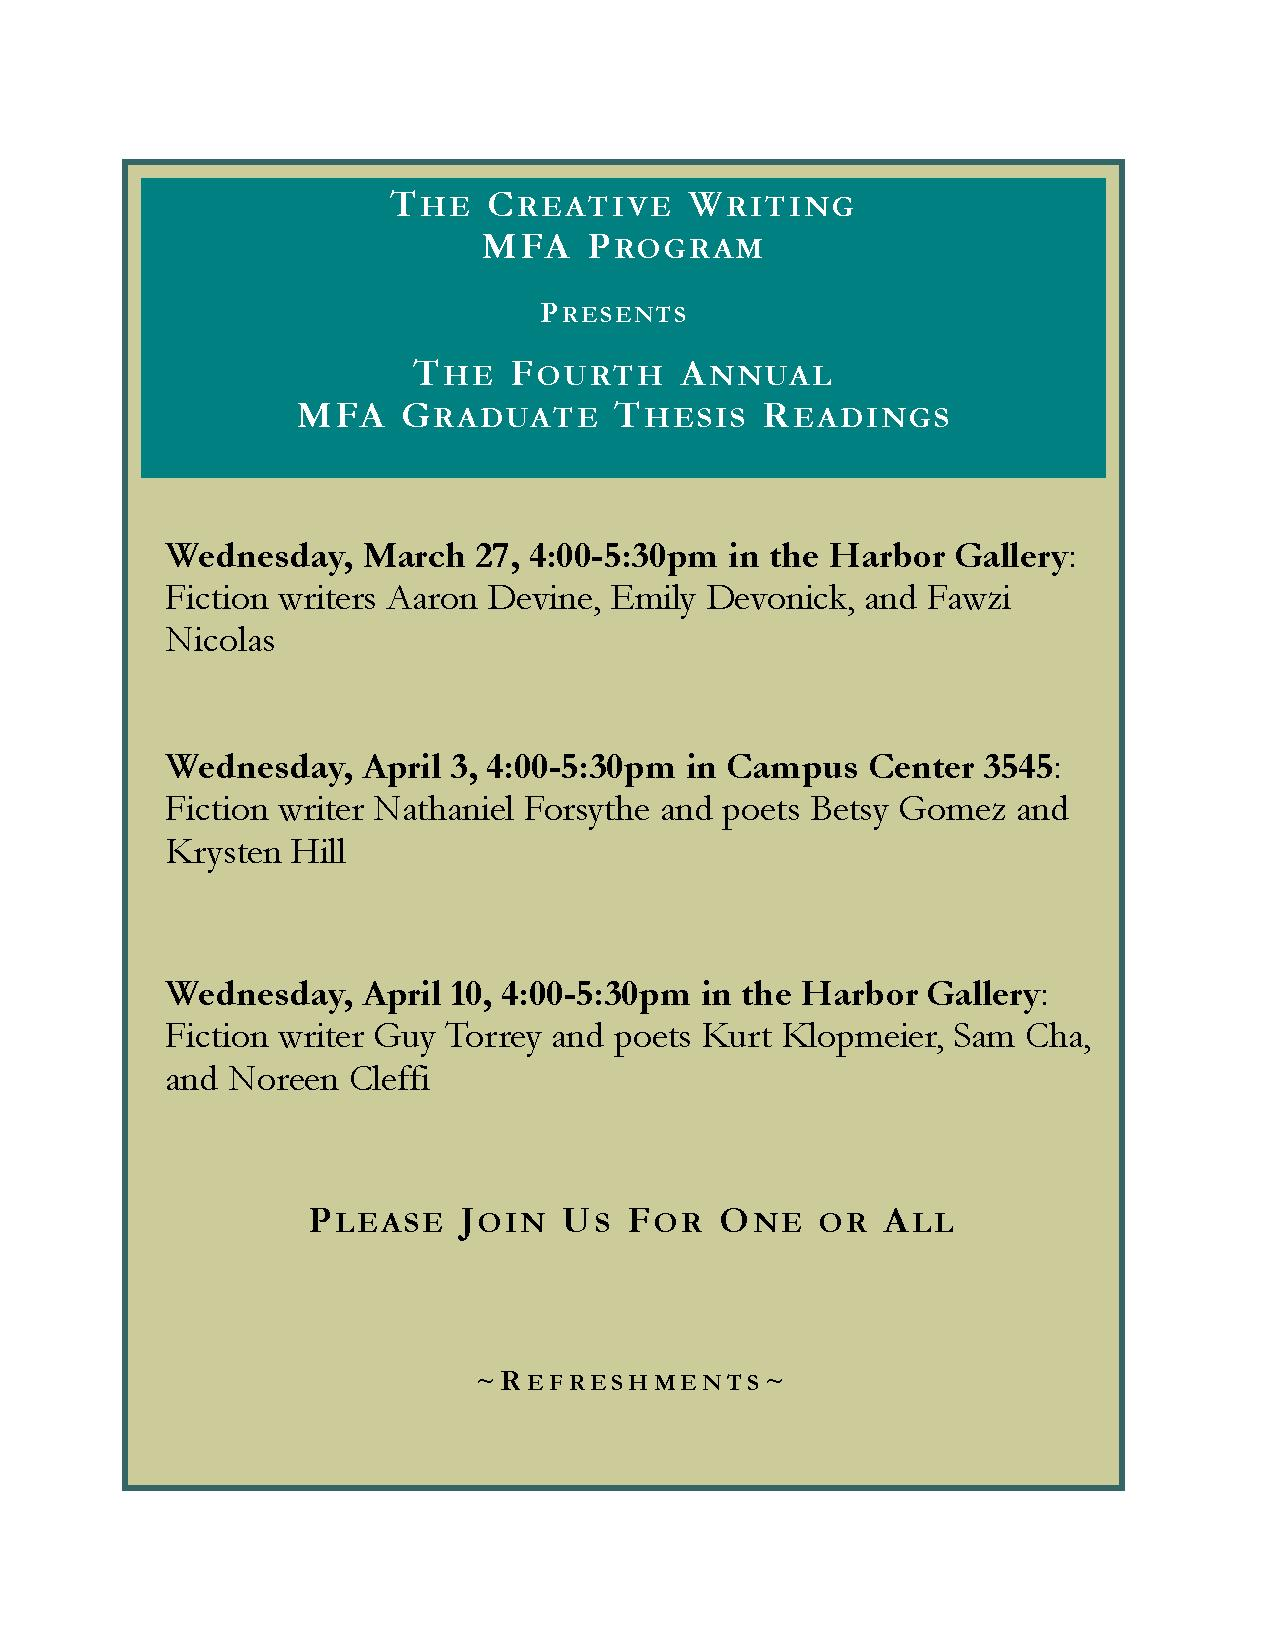 The creative writing mfa program presents the fourth annual mfa graduate thesis readings. Wednesday, March 27, 4:00-5:30 in the Harbor Gallery: fiction writers aaron devine, emily devonick, and fawzi nicolas. Wednesday, April 3, 4:00-5:30 in campus center 3545: fiction writer nathaniel forsythe and poets betsy gomez and krysten hill. Wednesday, april 10, 4:00-5:30 in the harbor gallery: Fiction writer guy torrey and poets kurt klopmeier, sam cha, and noreen cleffi. please join us for one or all. refreshments